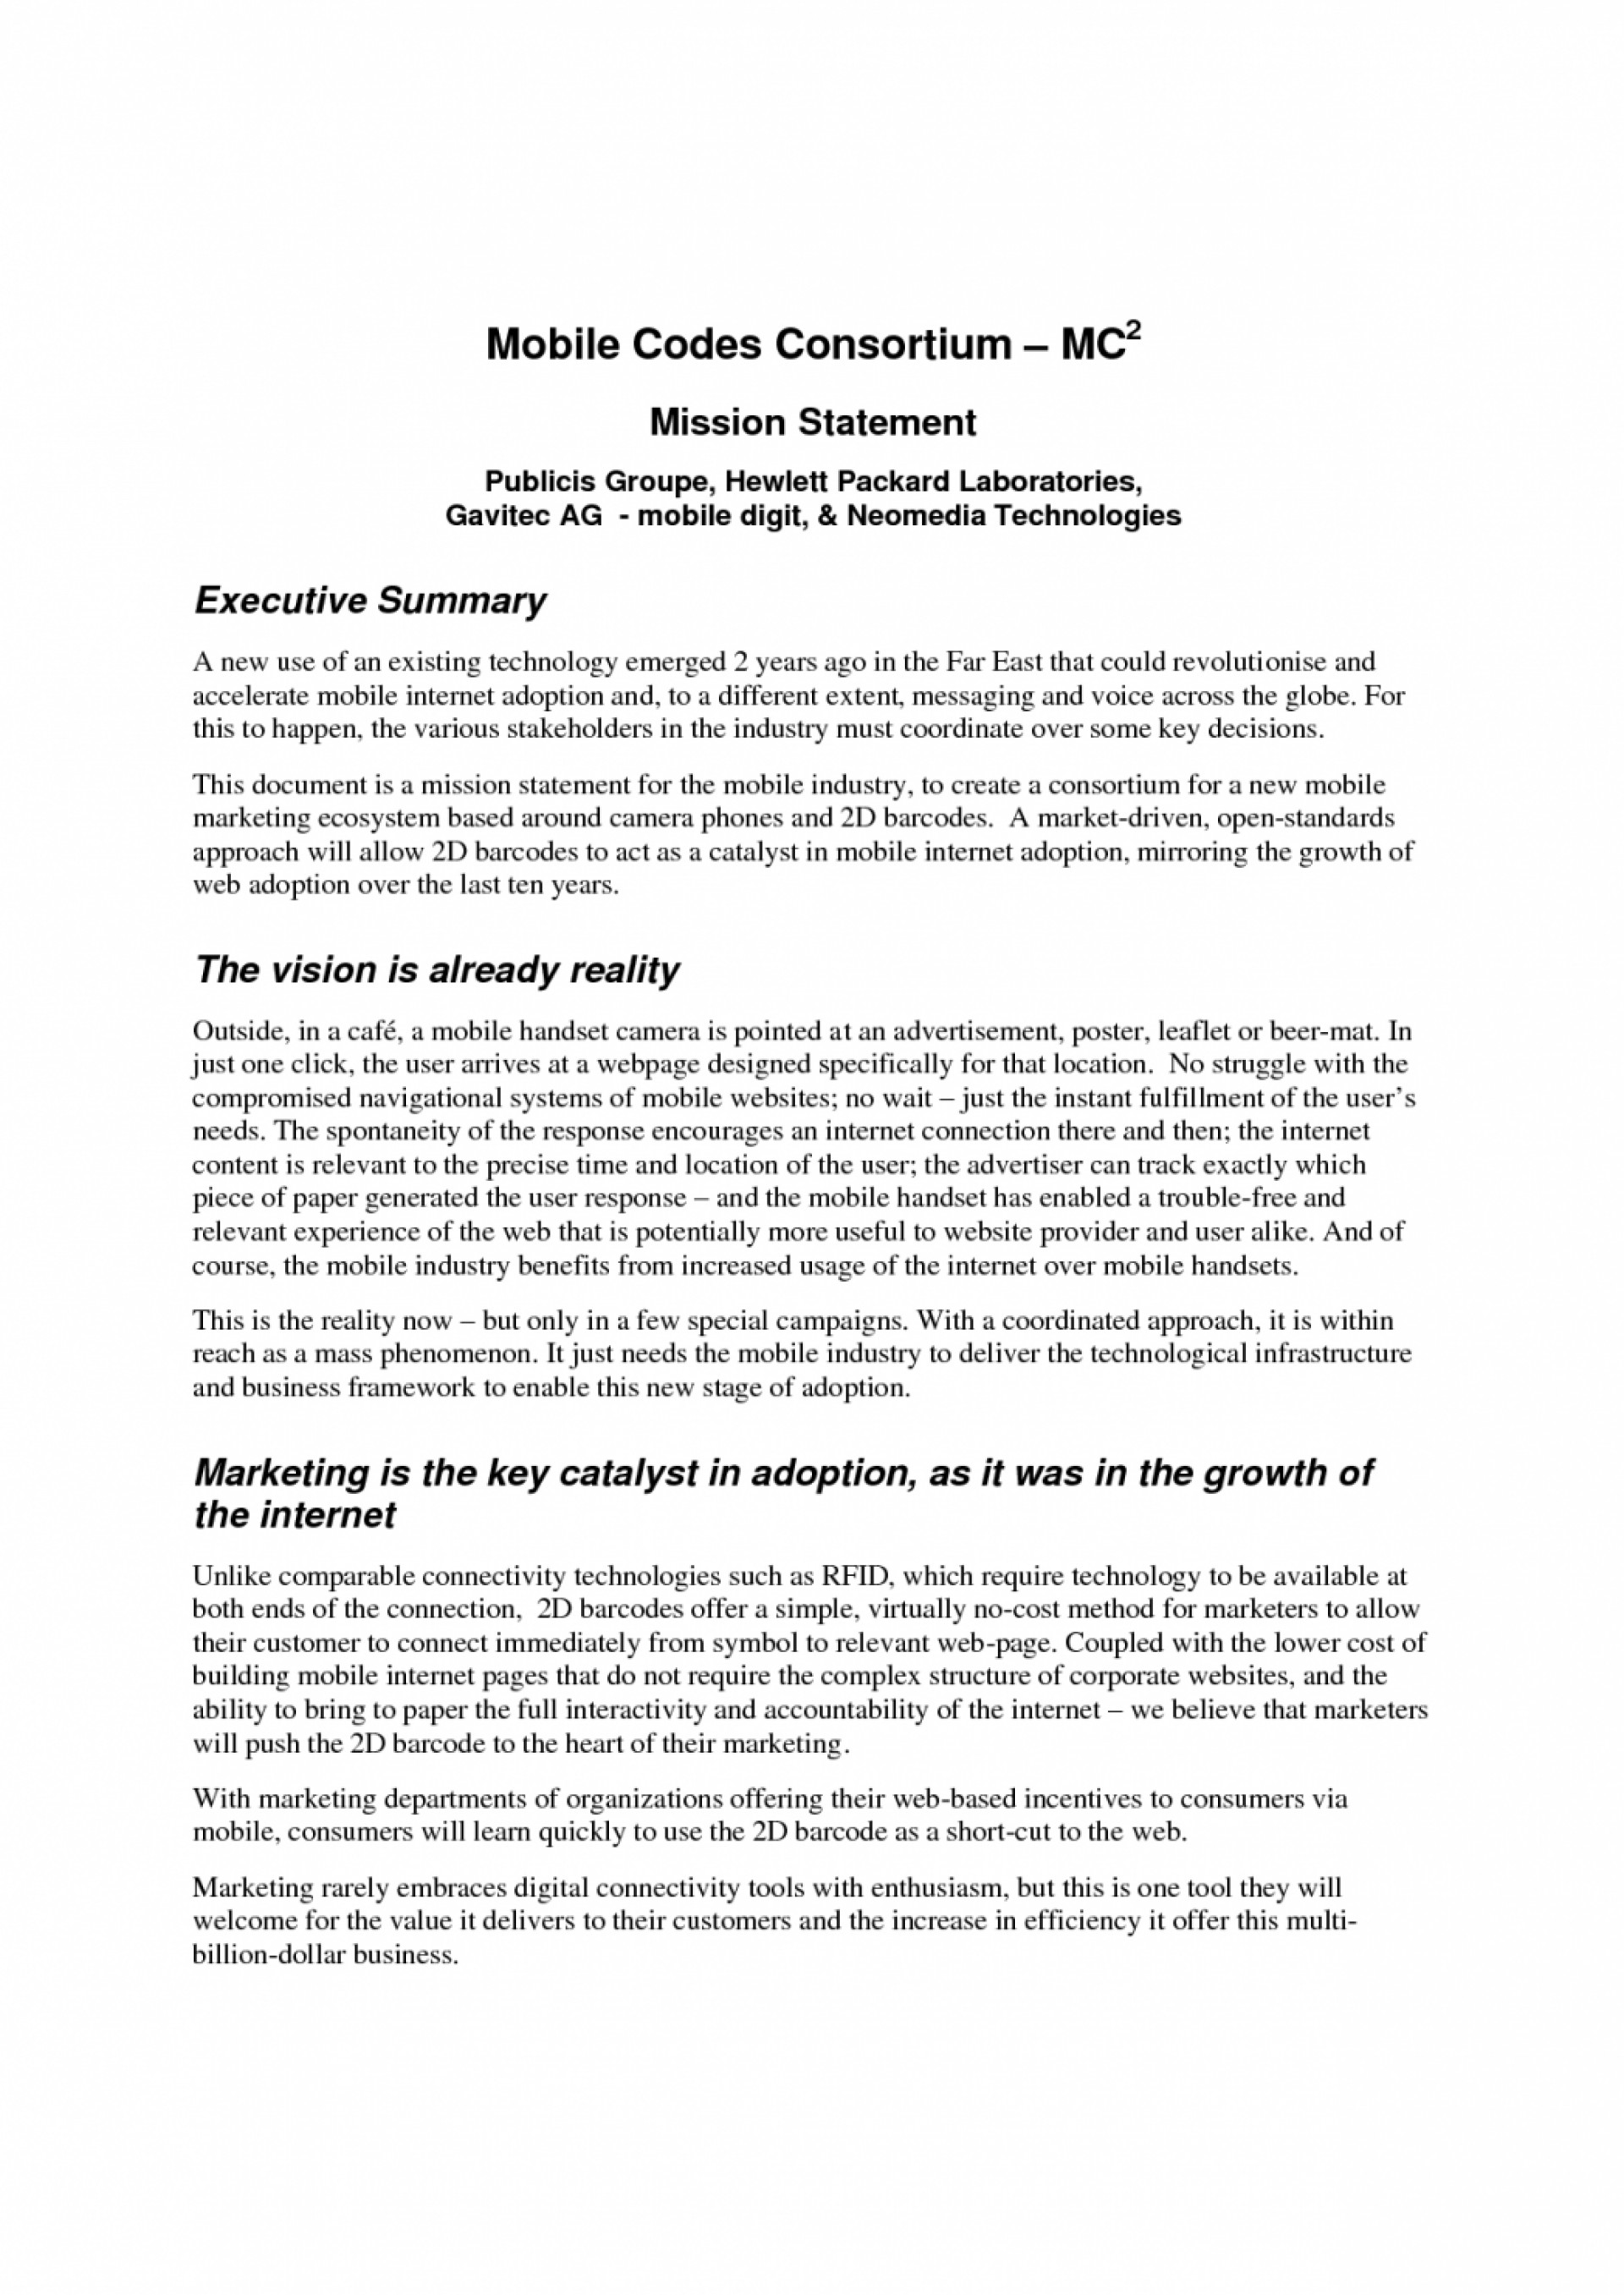 008 Argumentative Essay Capital Punishment About The Death Penalty Arguments For Disney Mission Statement Template H1t Against 1048x1481 Example Beautiful On Should Be Abolished Or Not In Hindi 1920